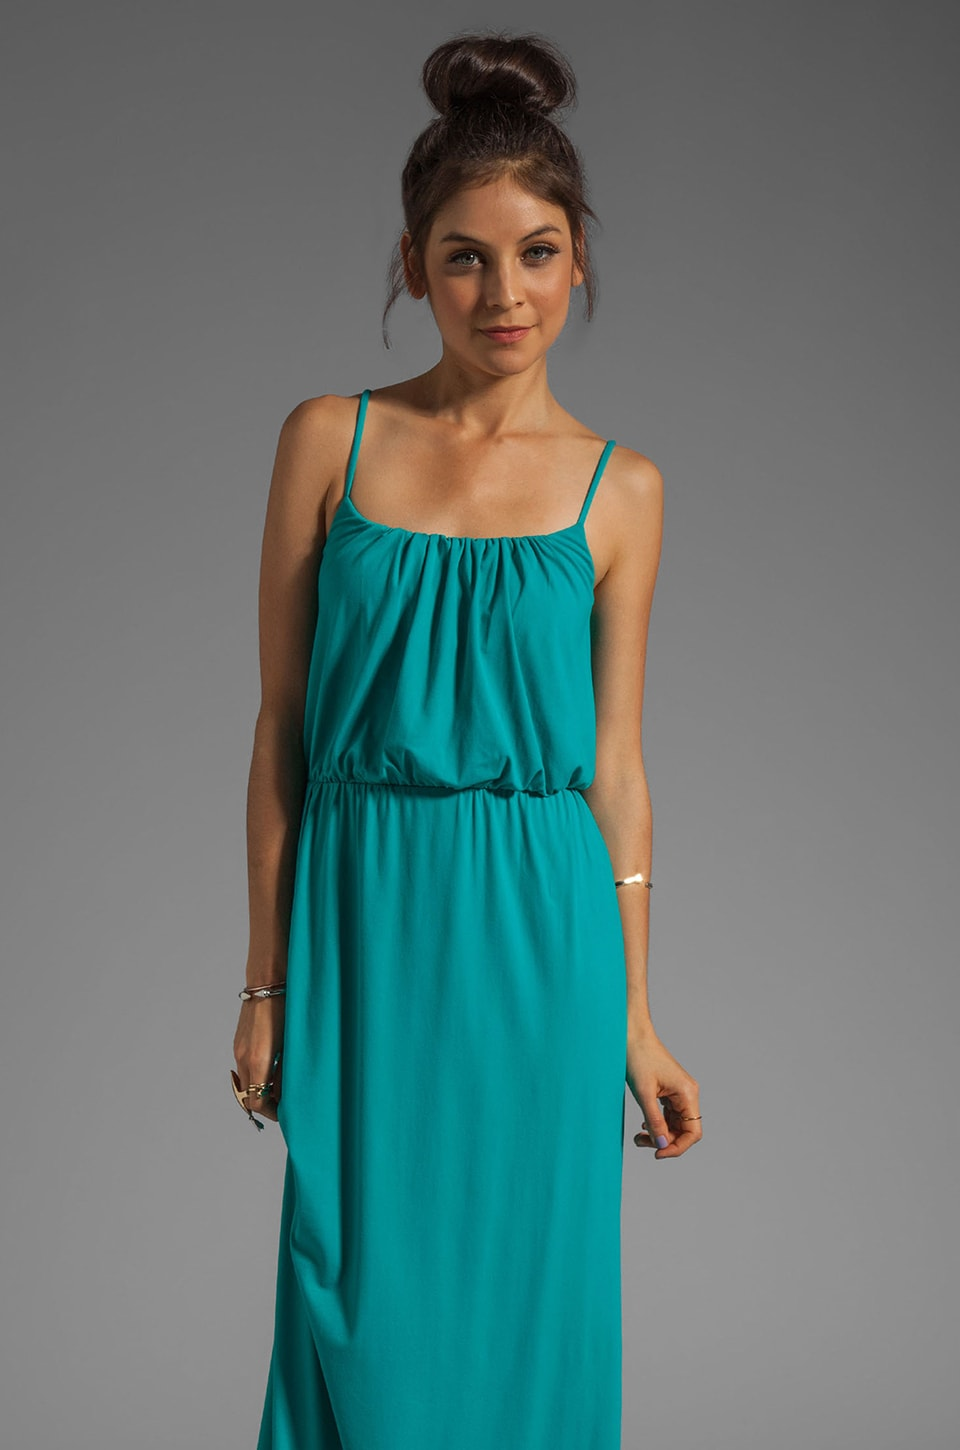 Susana Monaco Light Supplex Blouson Tank Dress in Maldives